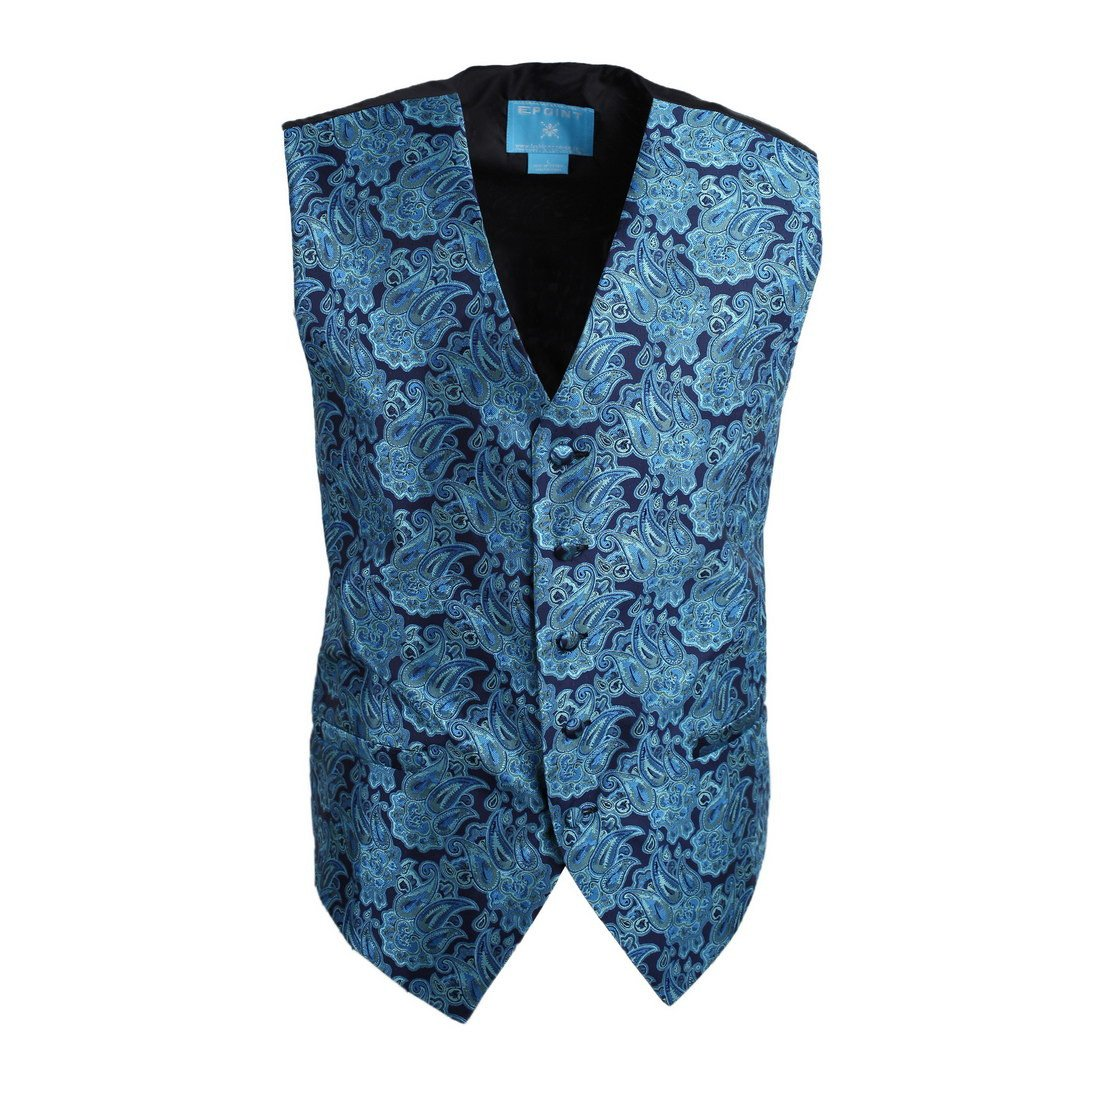 Epoint EGC1B06B-2XL Dark Turquoise Patterned Love For Marriag Waistcoat Woven Microfiber Bridegrooms Mens Vests XX-Large Vest